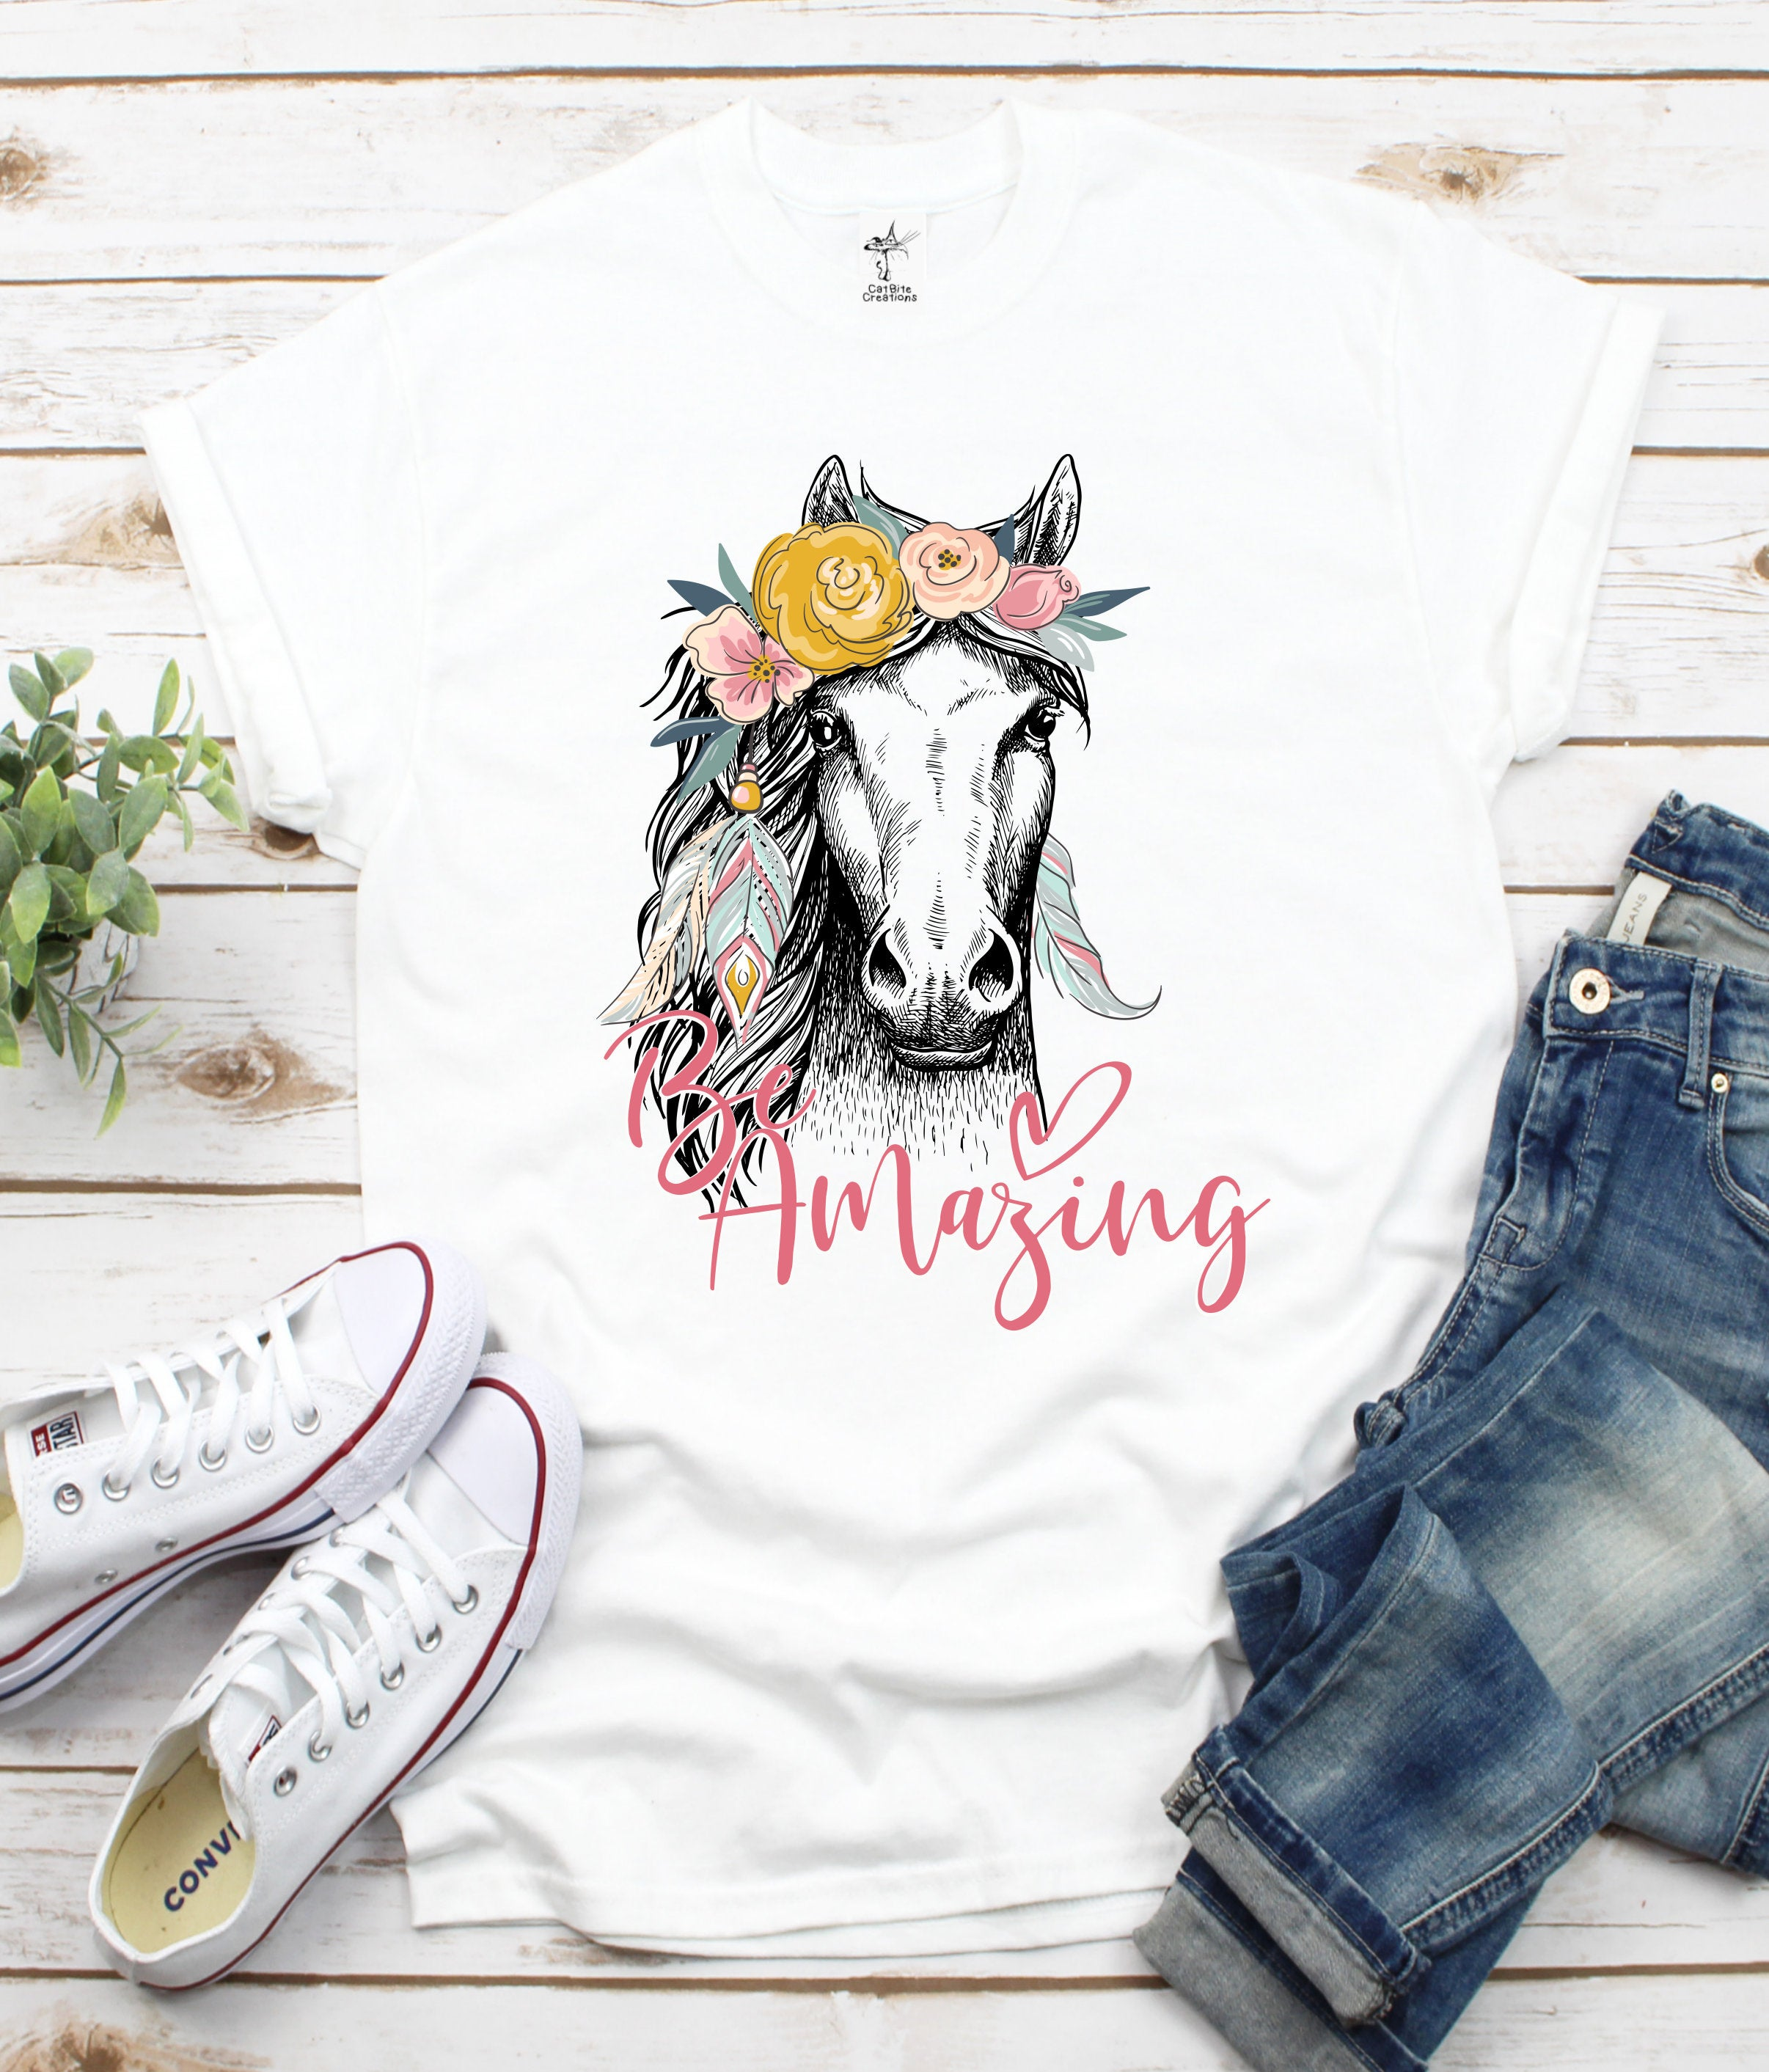 Be Amazing Horse Print Women Tshirt Cotton Casual Funny T Shirt Gift For Lady Yong Girl Top Tee PM-94